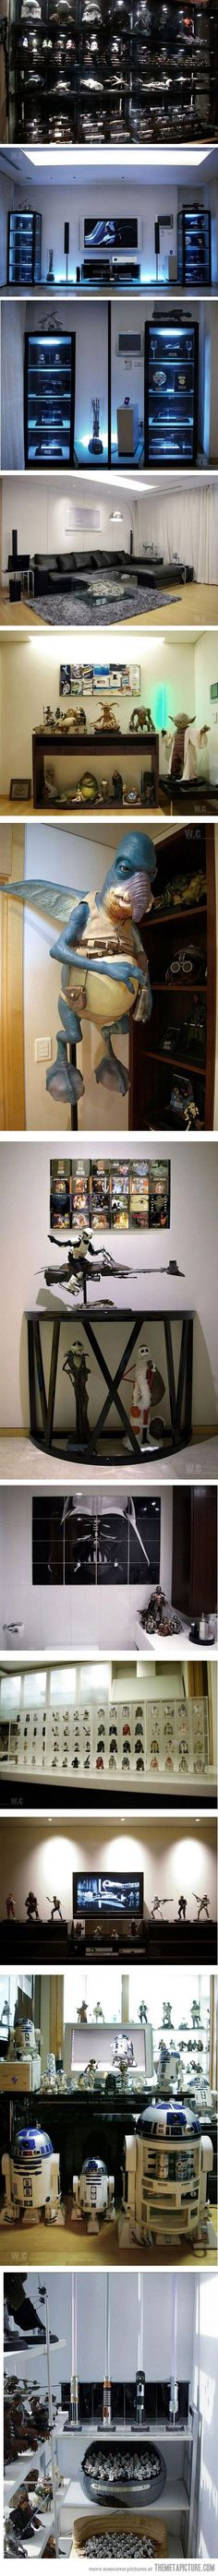 Star Wars Home. This is awesome. Would be better without the nightmare before Christmas characters though